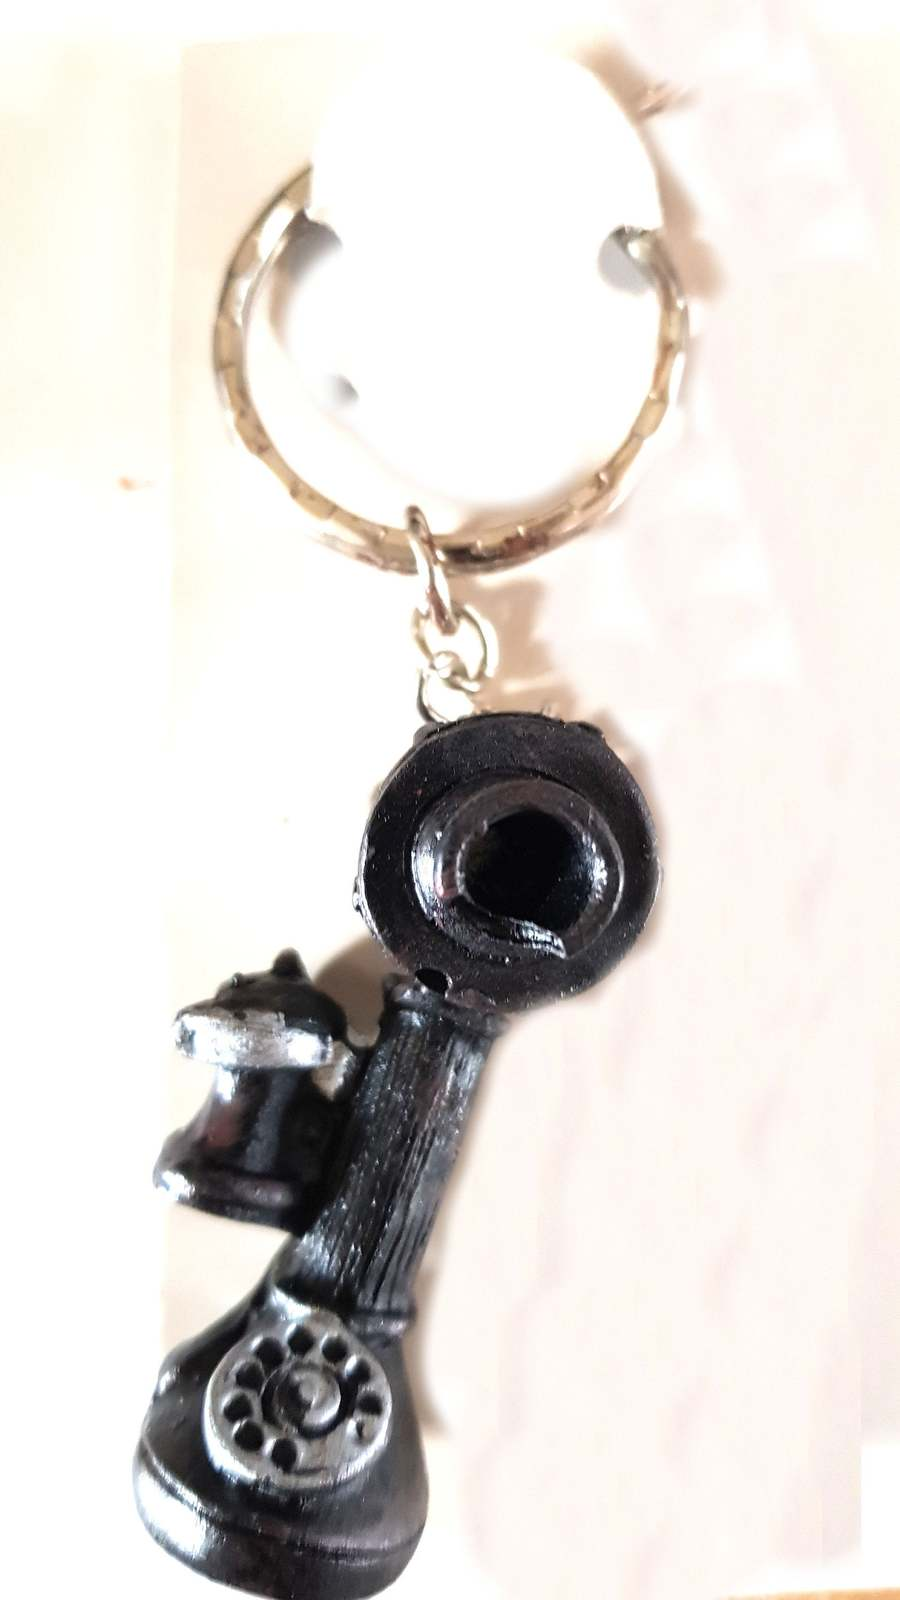 olde fashioned telephone hand molded and coloured keyring  handmade in uk from u